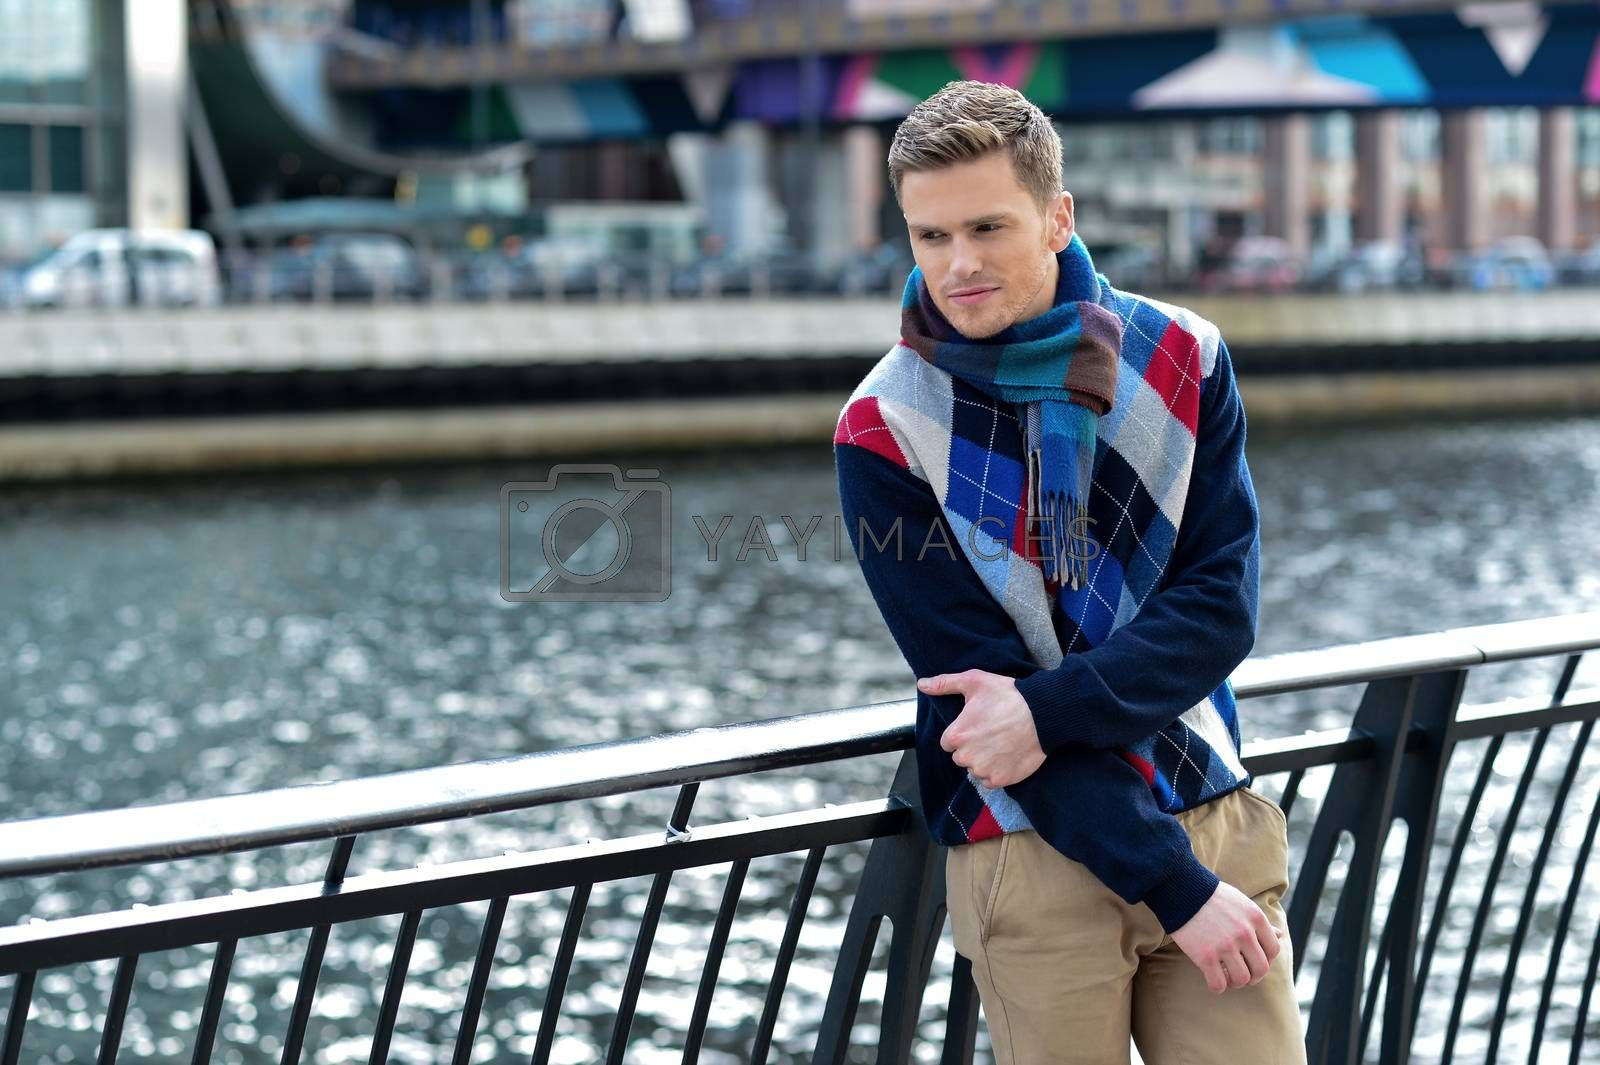 Young man leaning on metal railing at outdoors